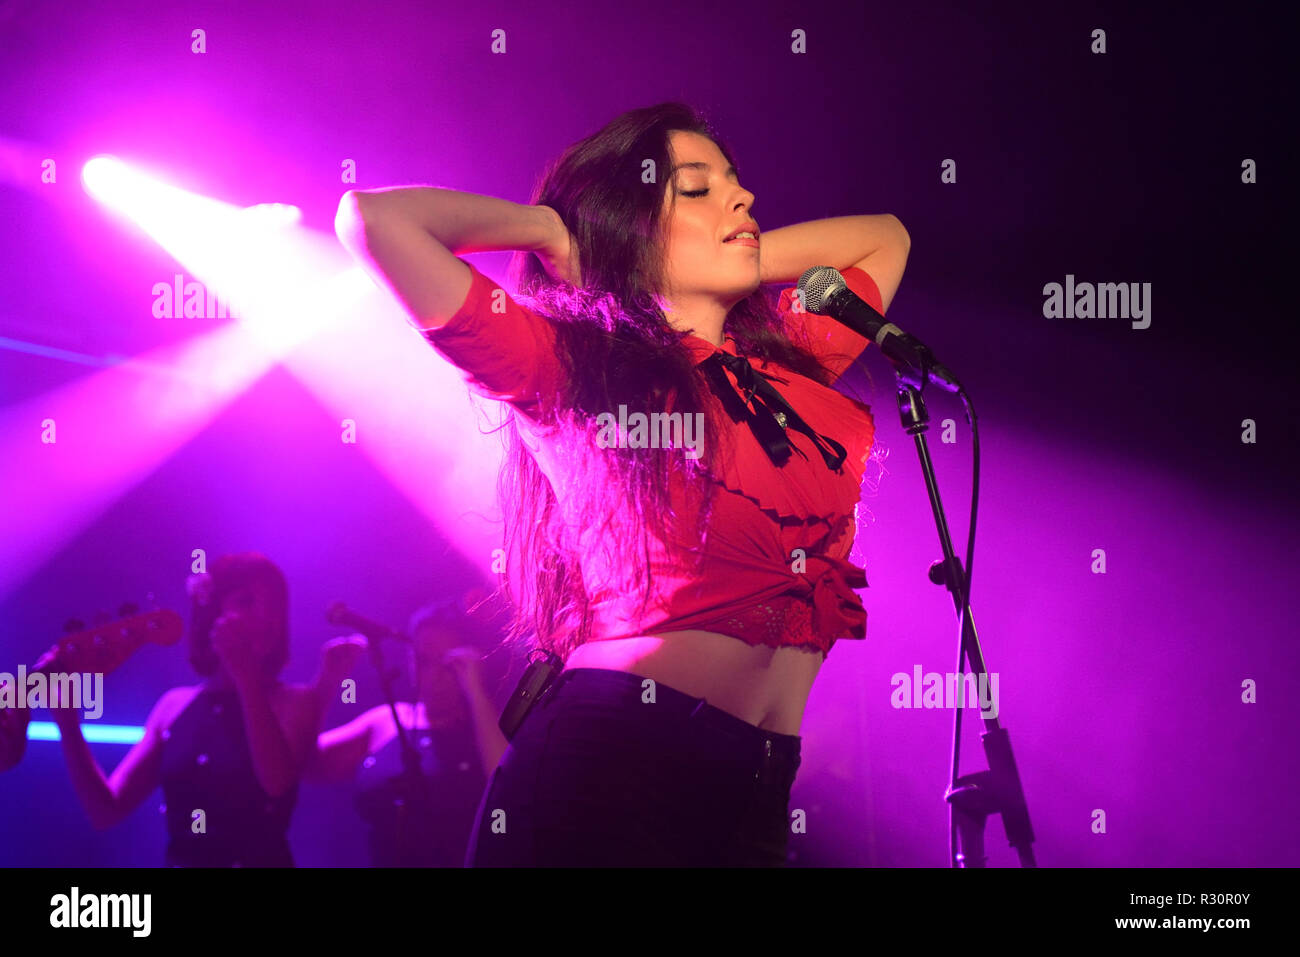 BARCELONA - MAY 10: Solea Morente (flamenco singer) performs in concert at Apolo stage on May 10, 2018 in Barcelona, Spain. - Stock Image